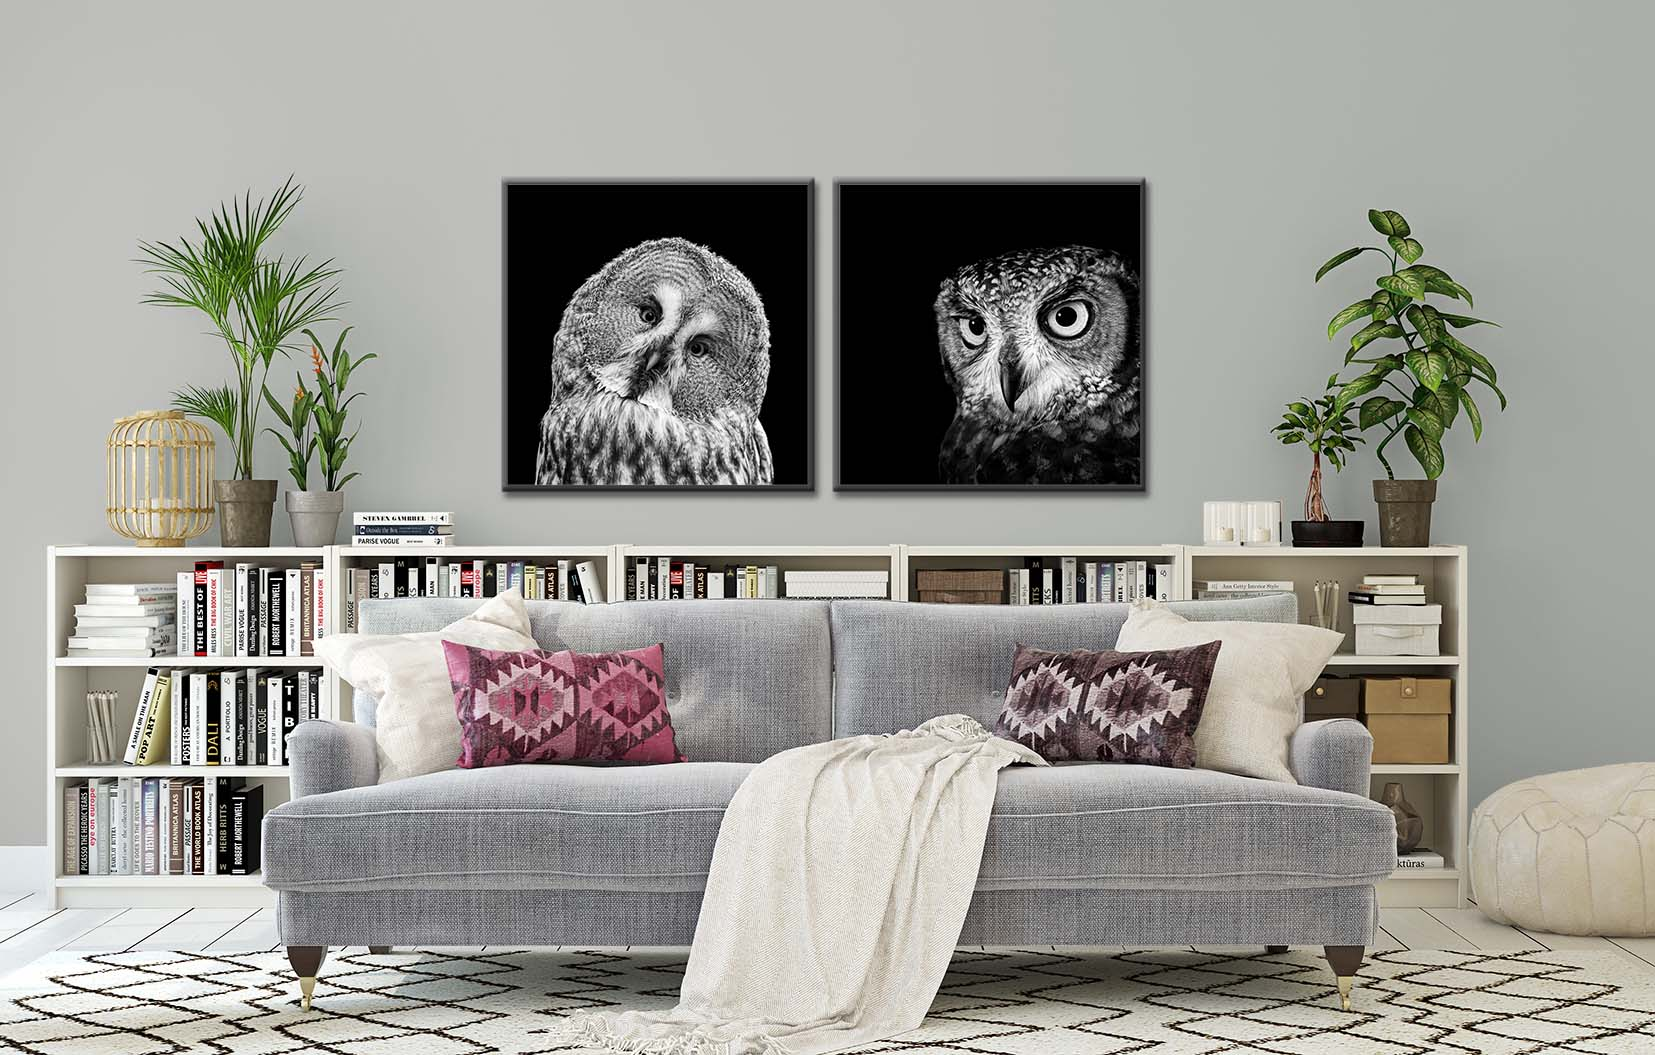 Two black and white photographs of owls. Limited edition owl prints by fine art photographer Paul Coghlin FBIPP.